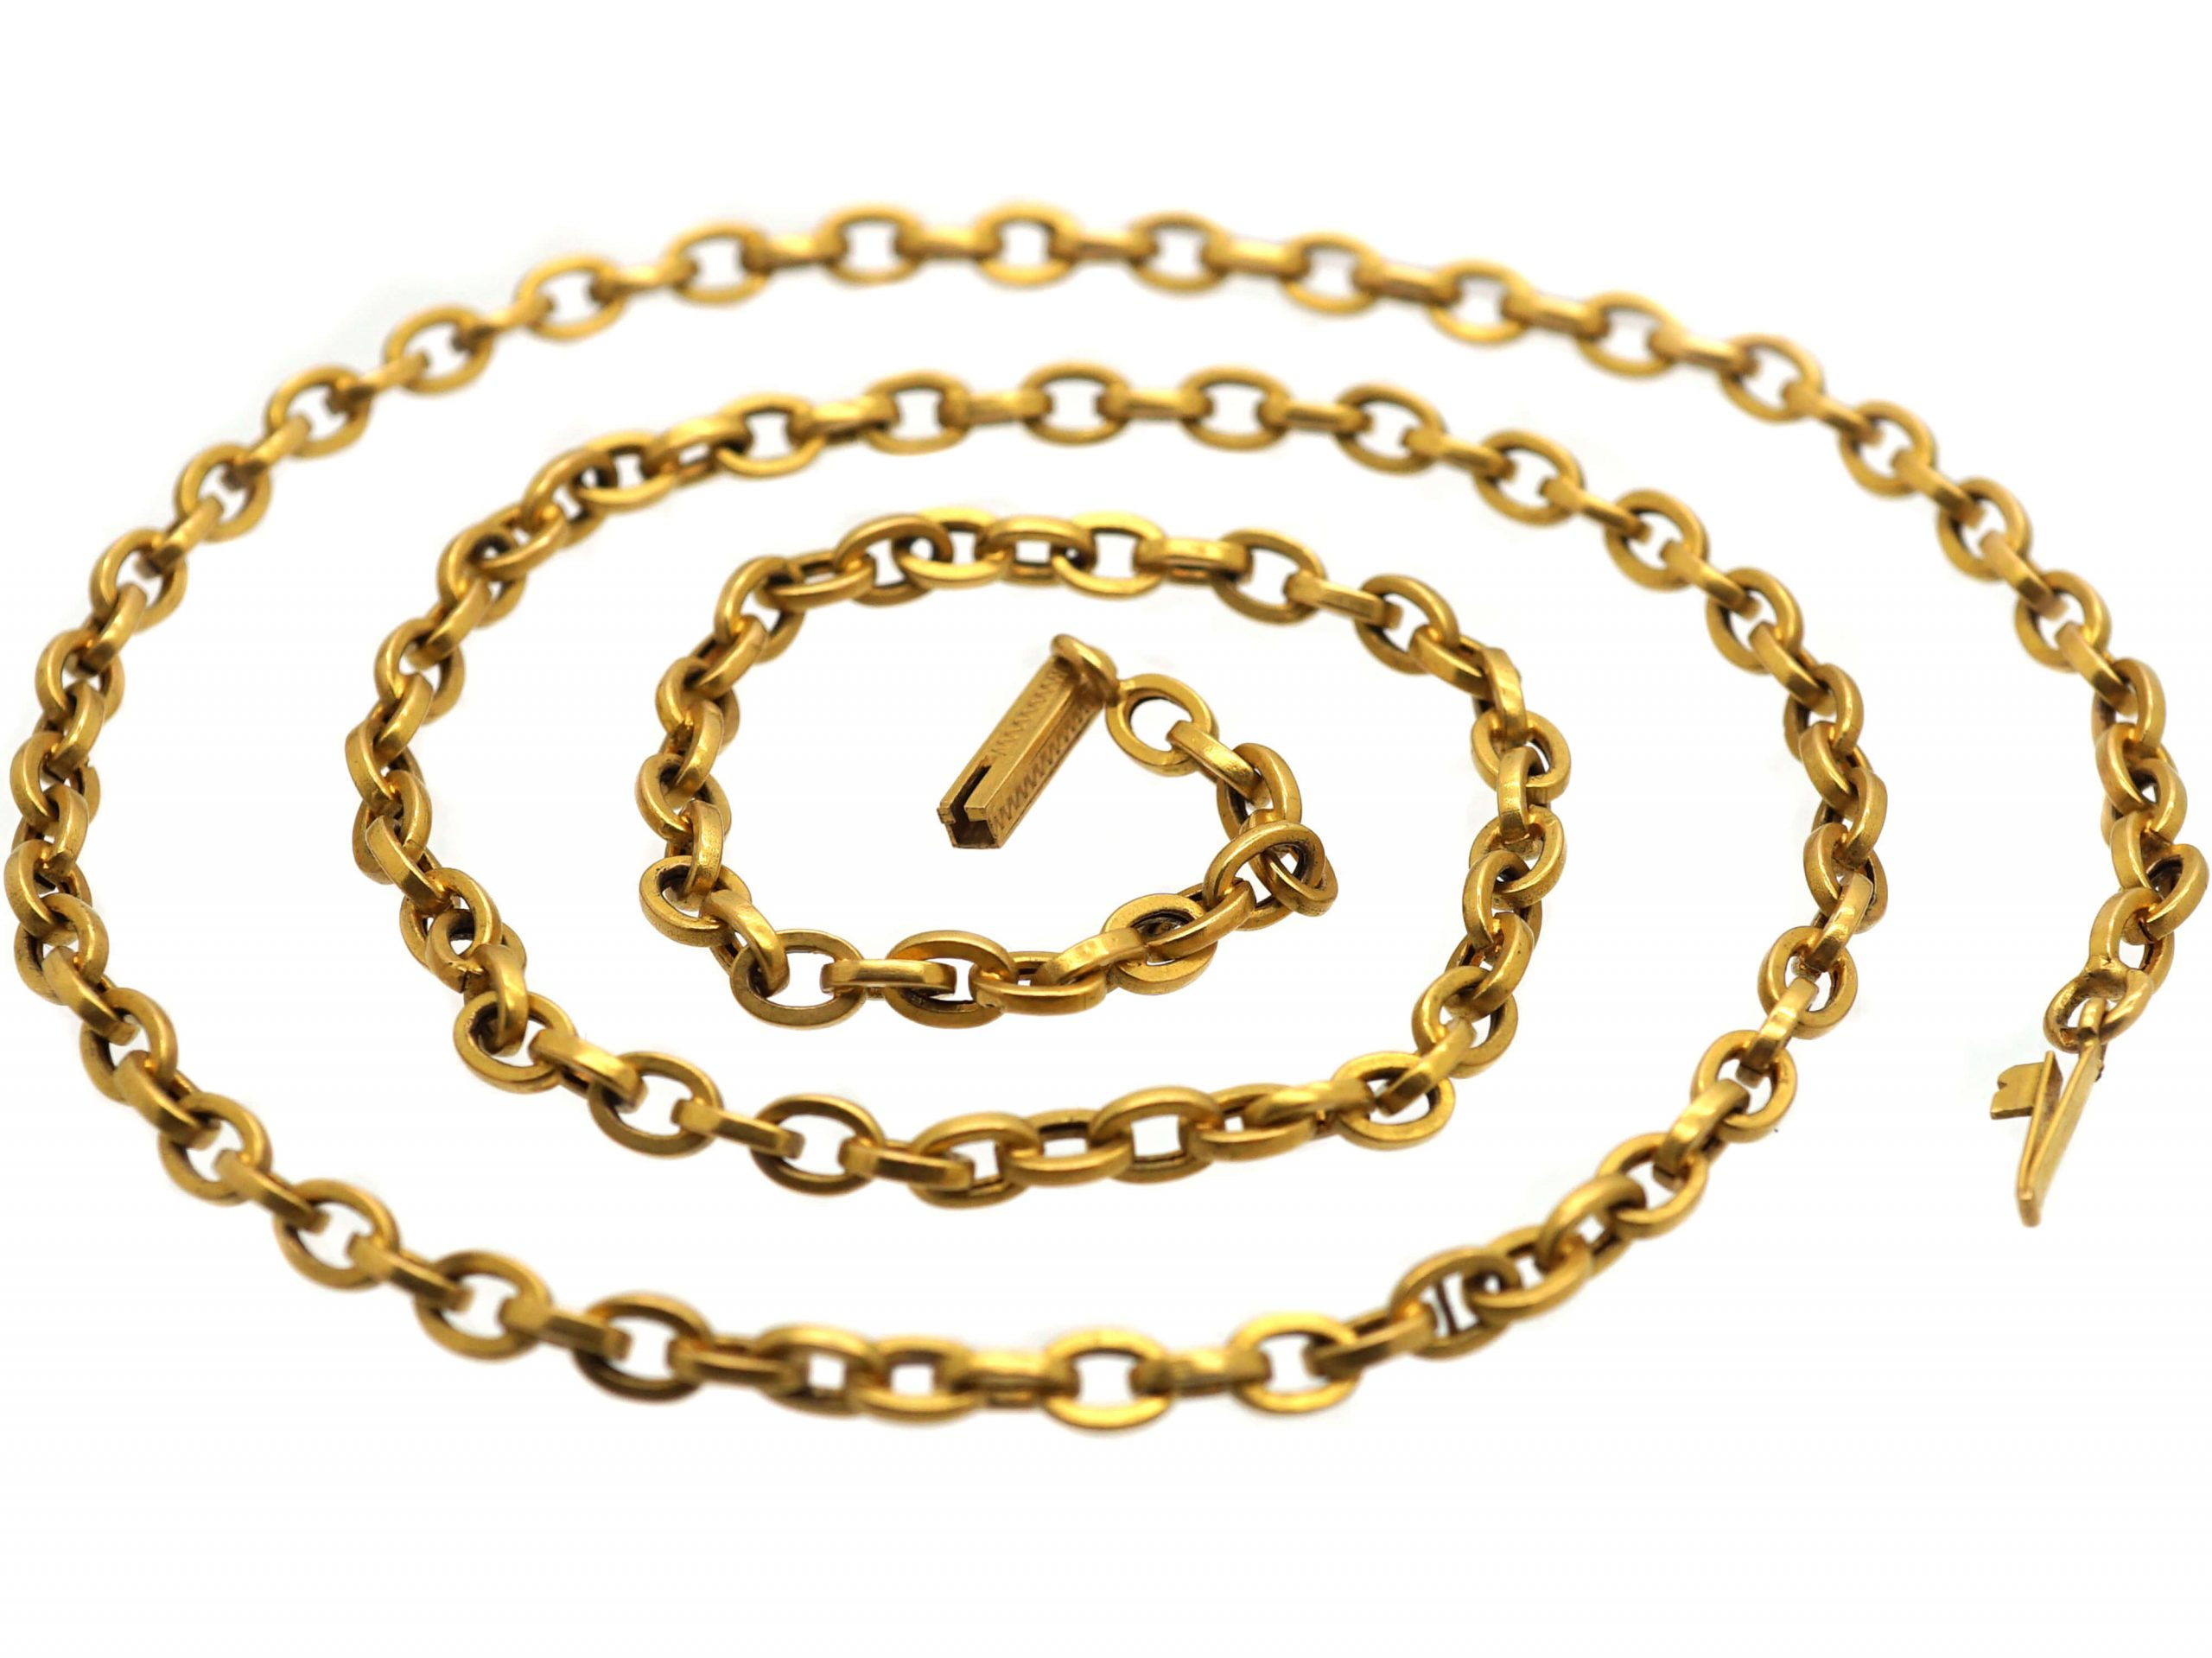 French Belle Epoch 18ct Gold Chain